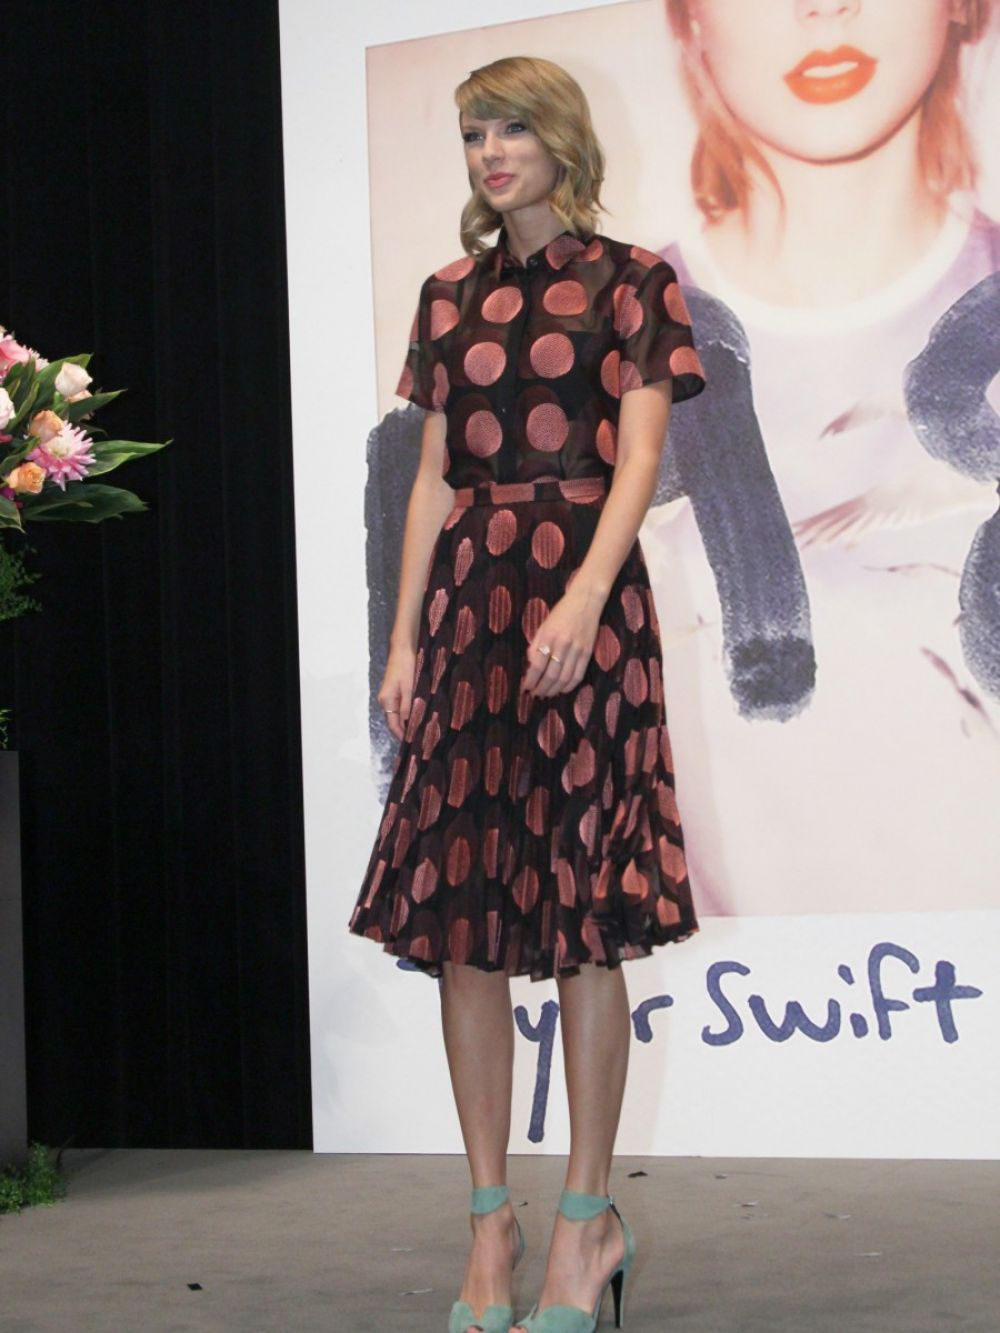 taylor-swift-at-1989-album-tokyo-press-conference-in-japan_1